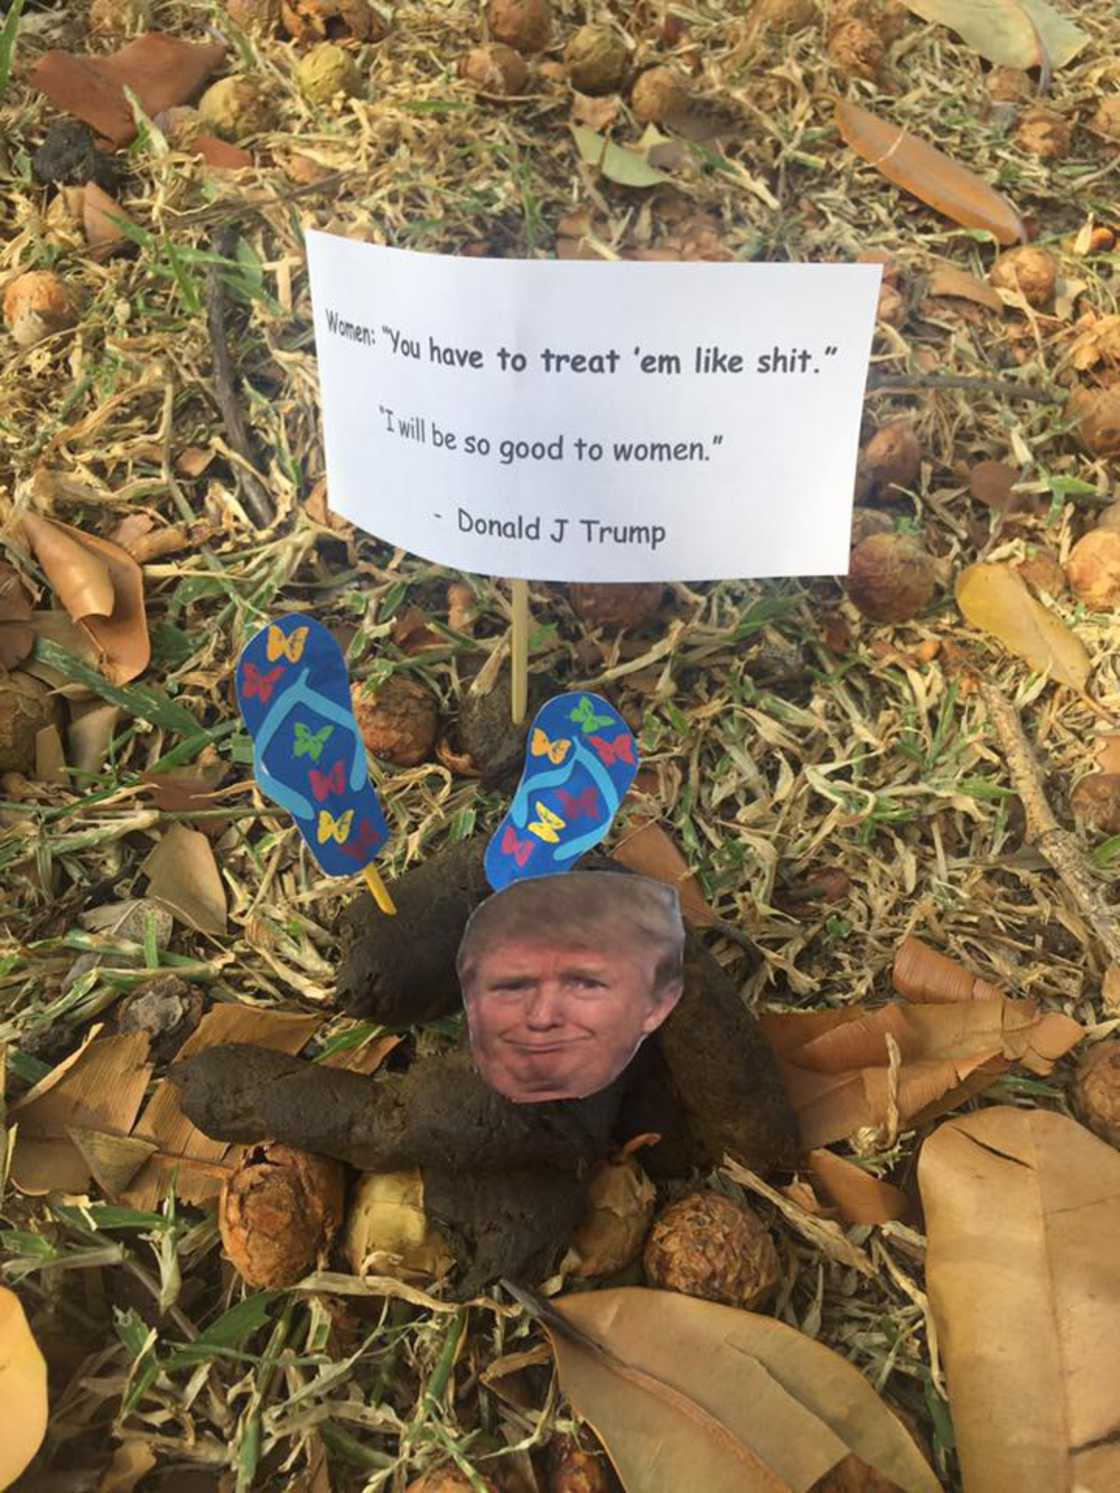 Pieces of Trump - Displaying quotes from Donald Trump on dog excrement